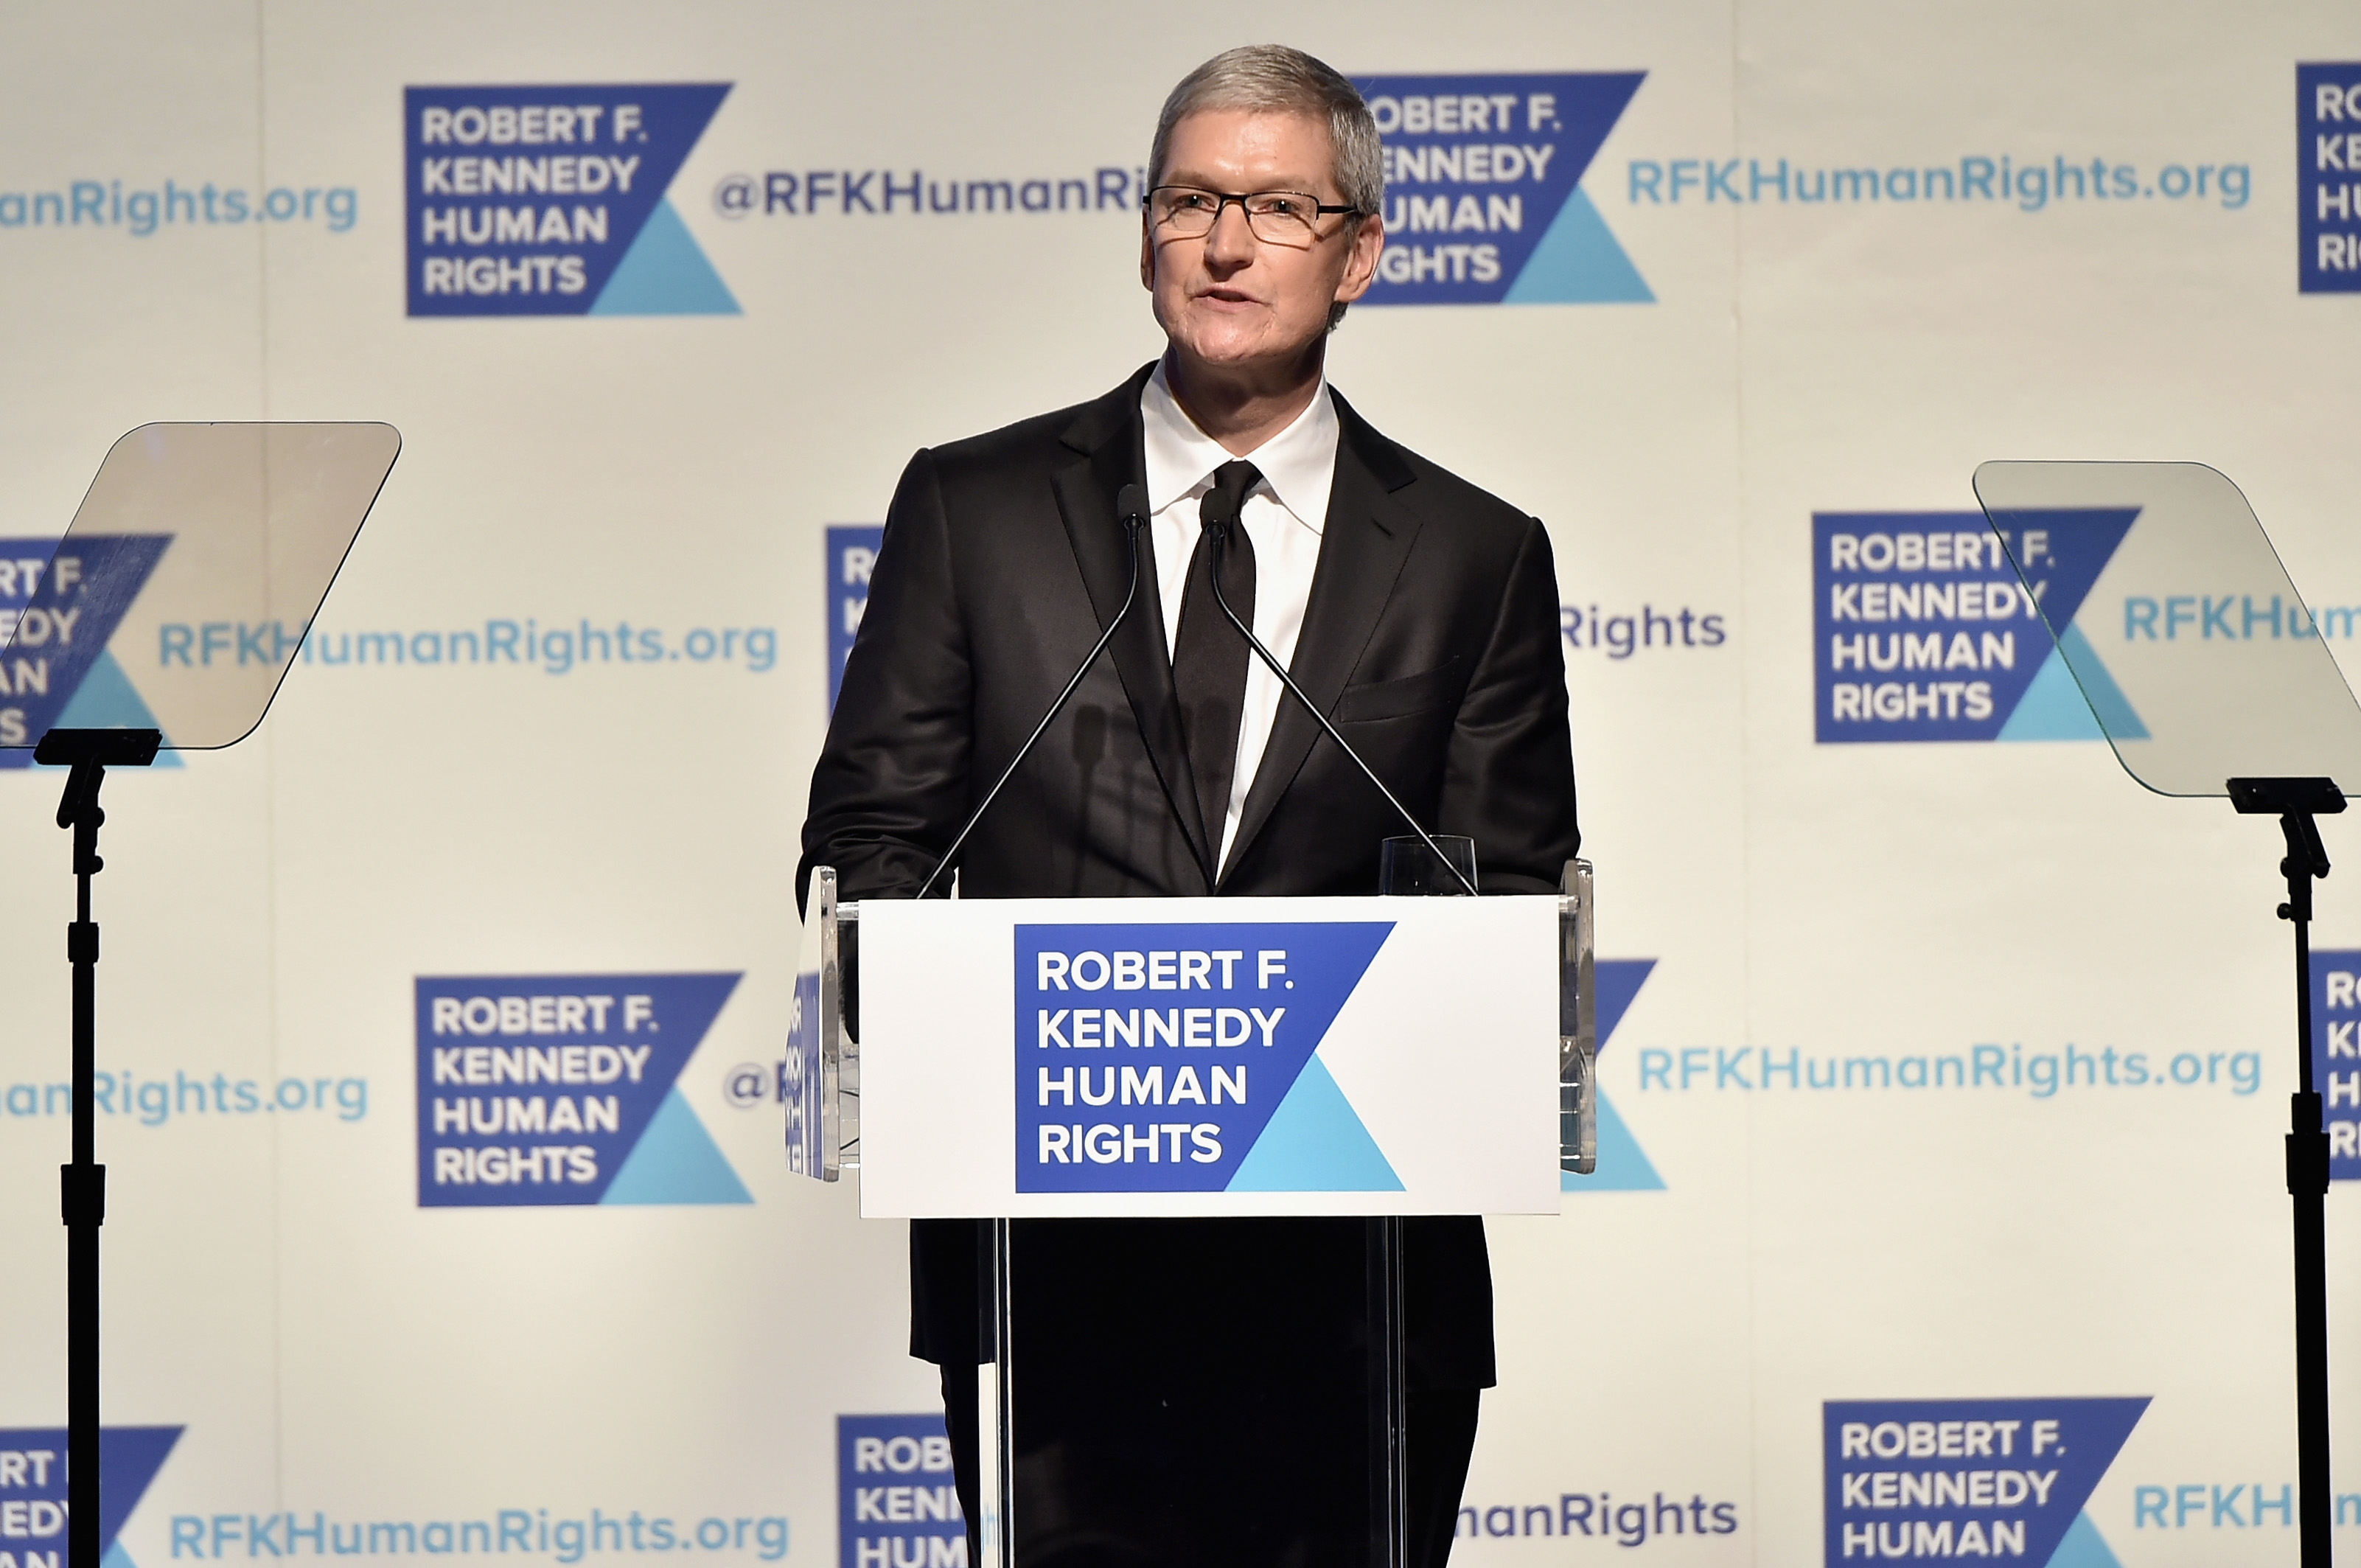 Apple CEO Tim Cook speaks onstage as Robert F. Kennedy Human Rights hosts The 2015 Ripple Of Hope Awards on Dec. 8, 2015 in New York City.